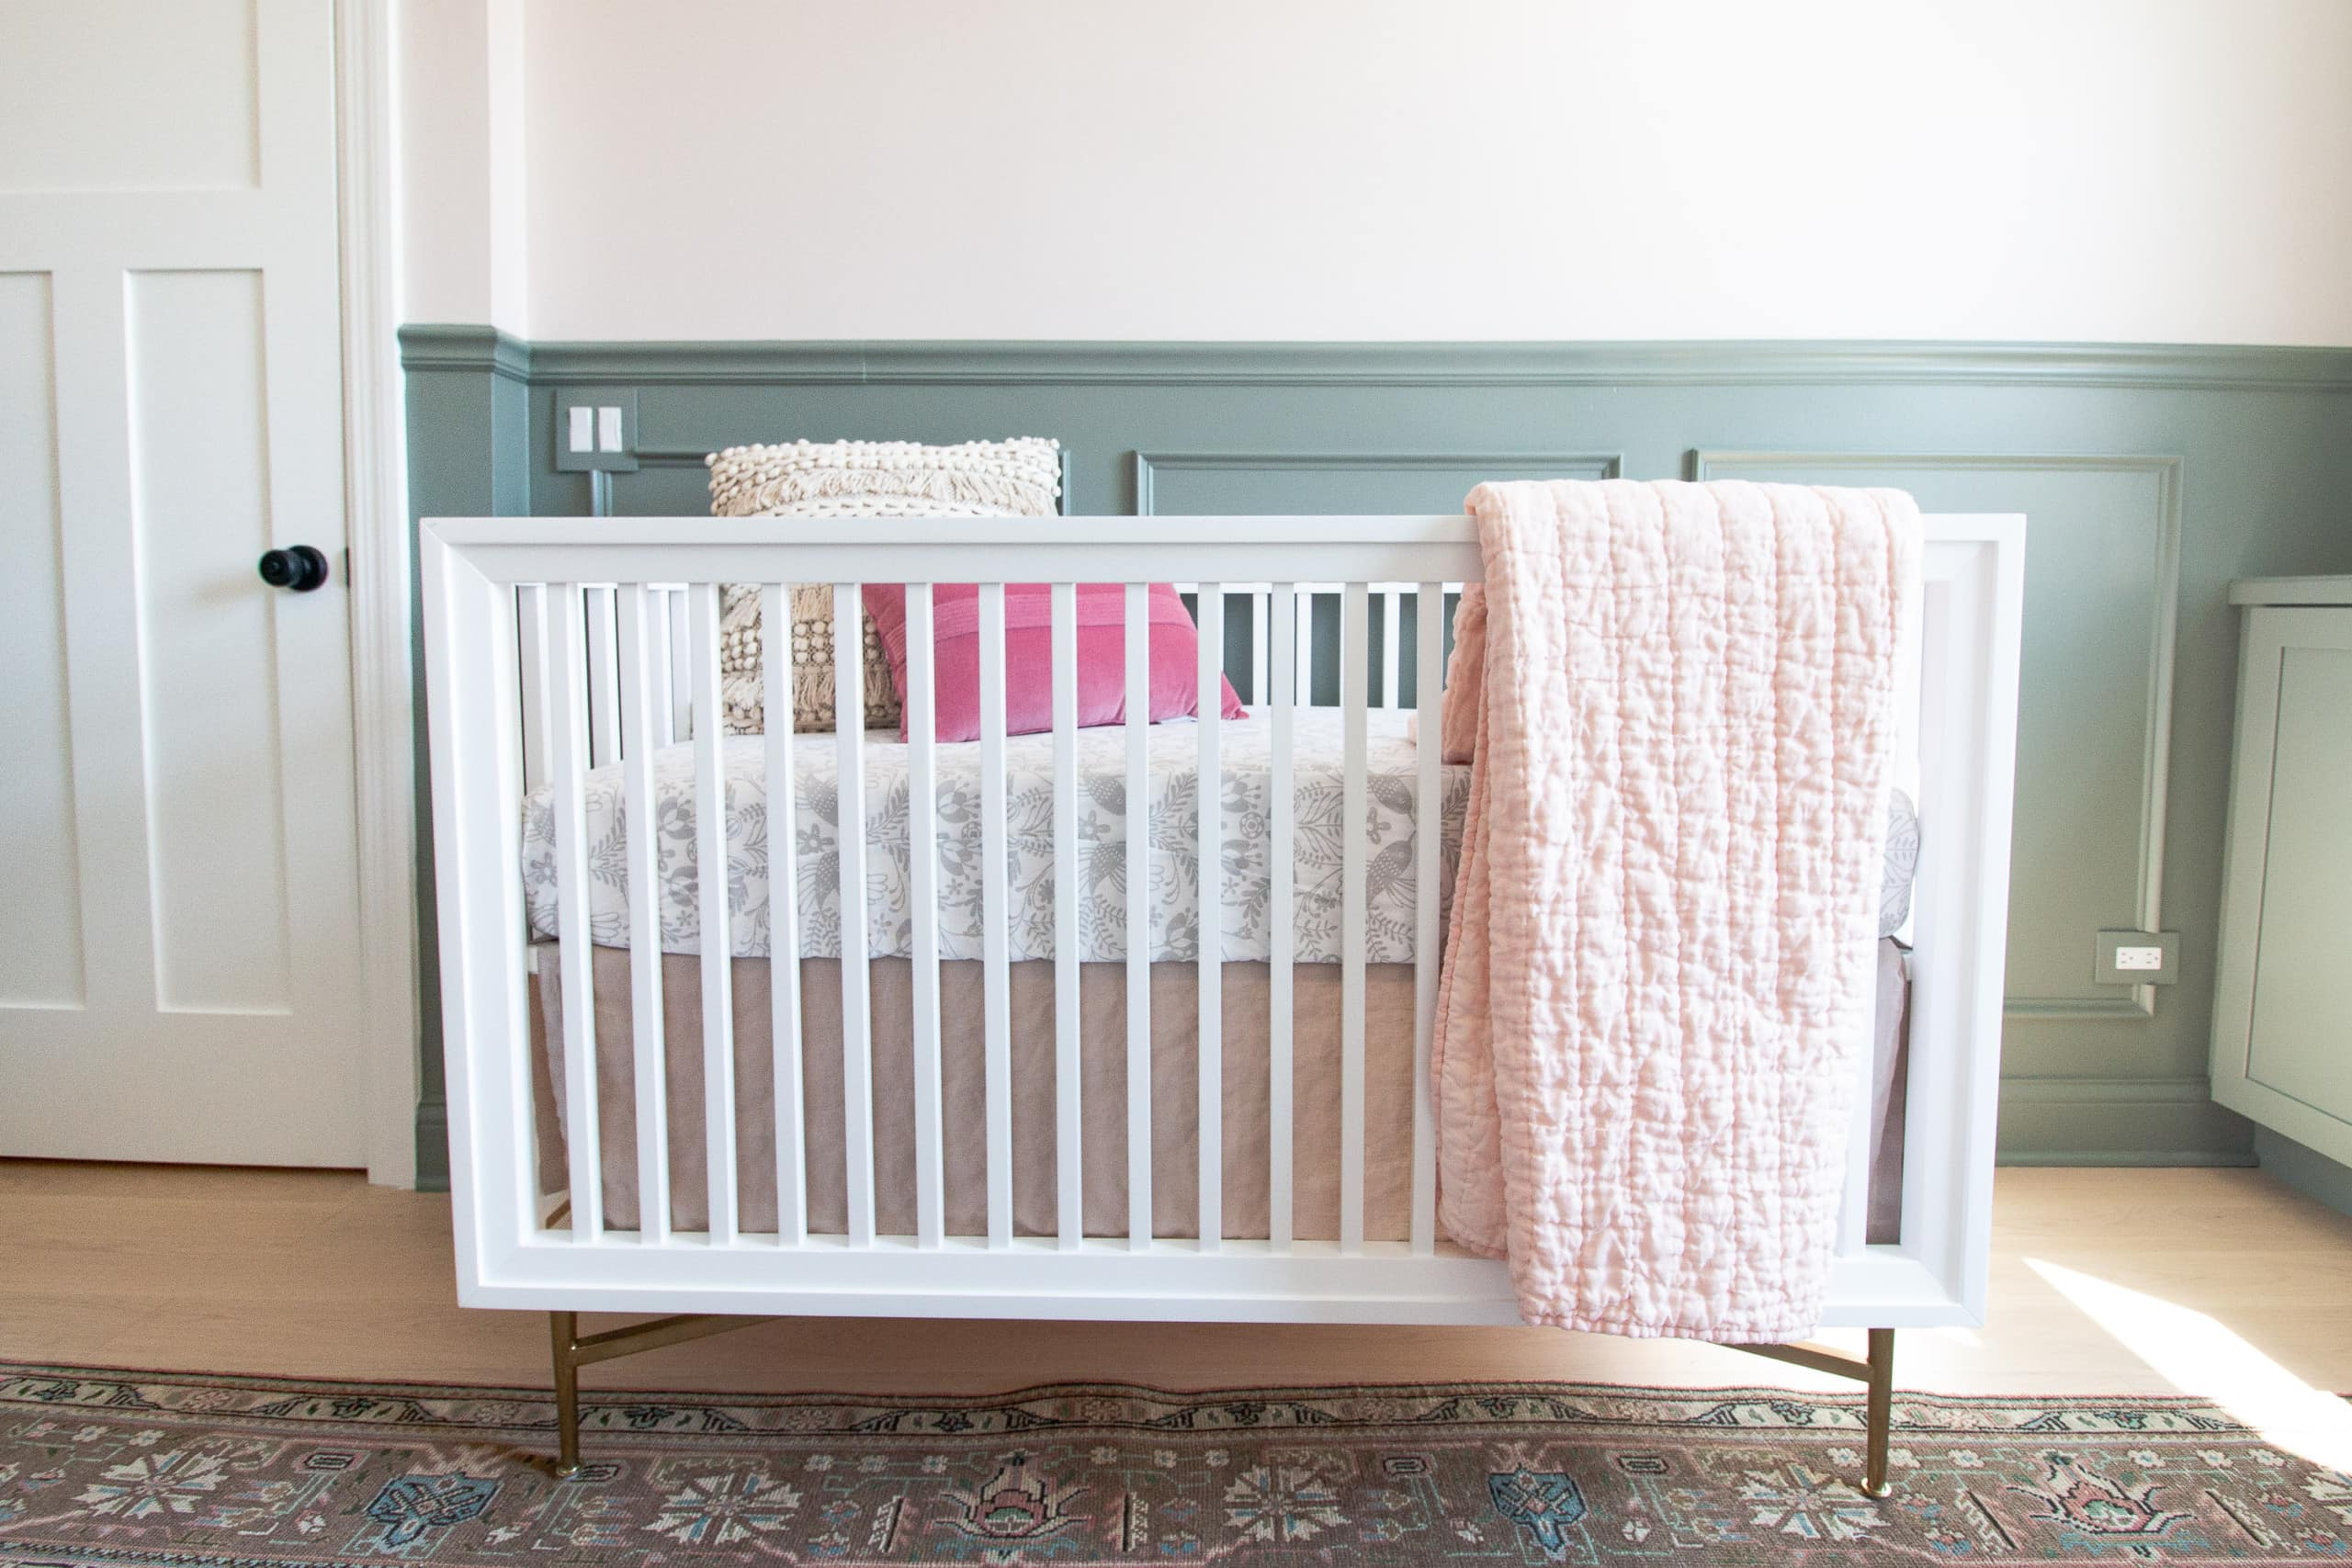 White and brass crib from Crate and Kids